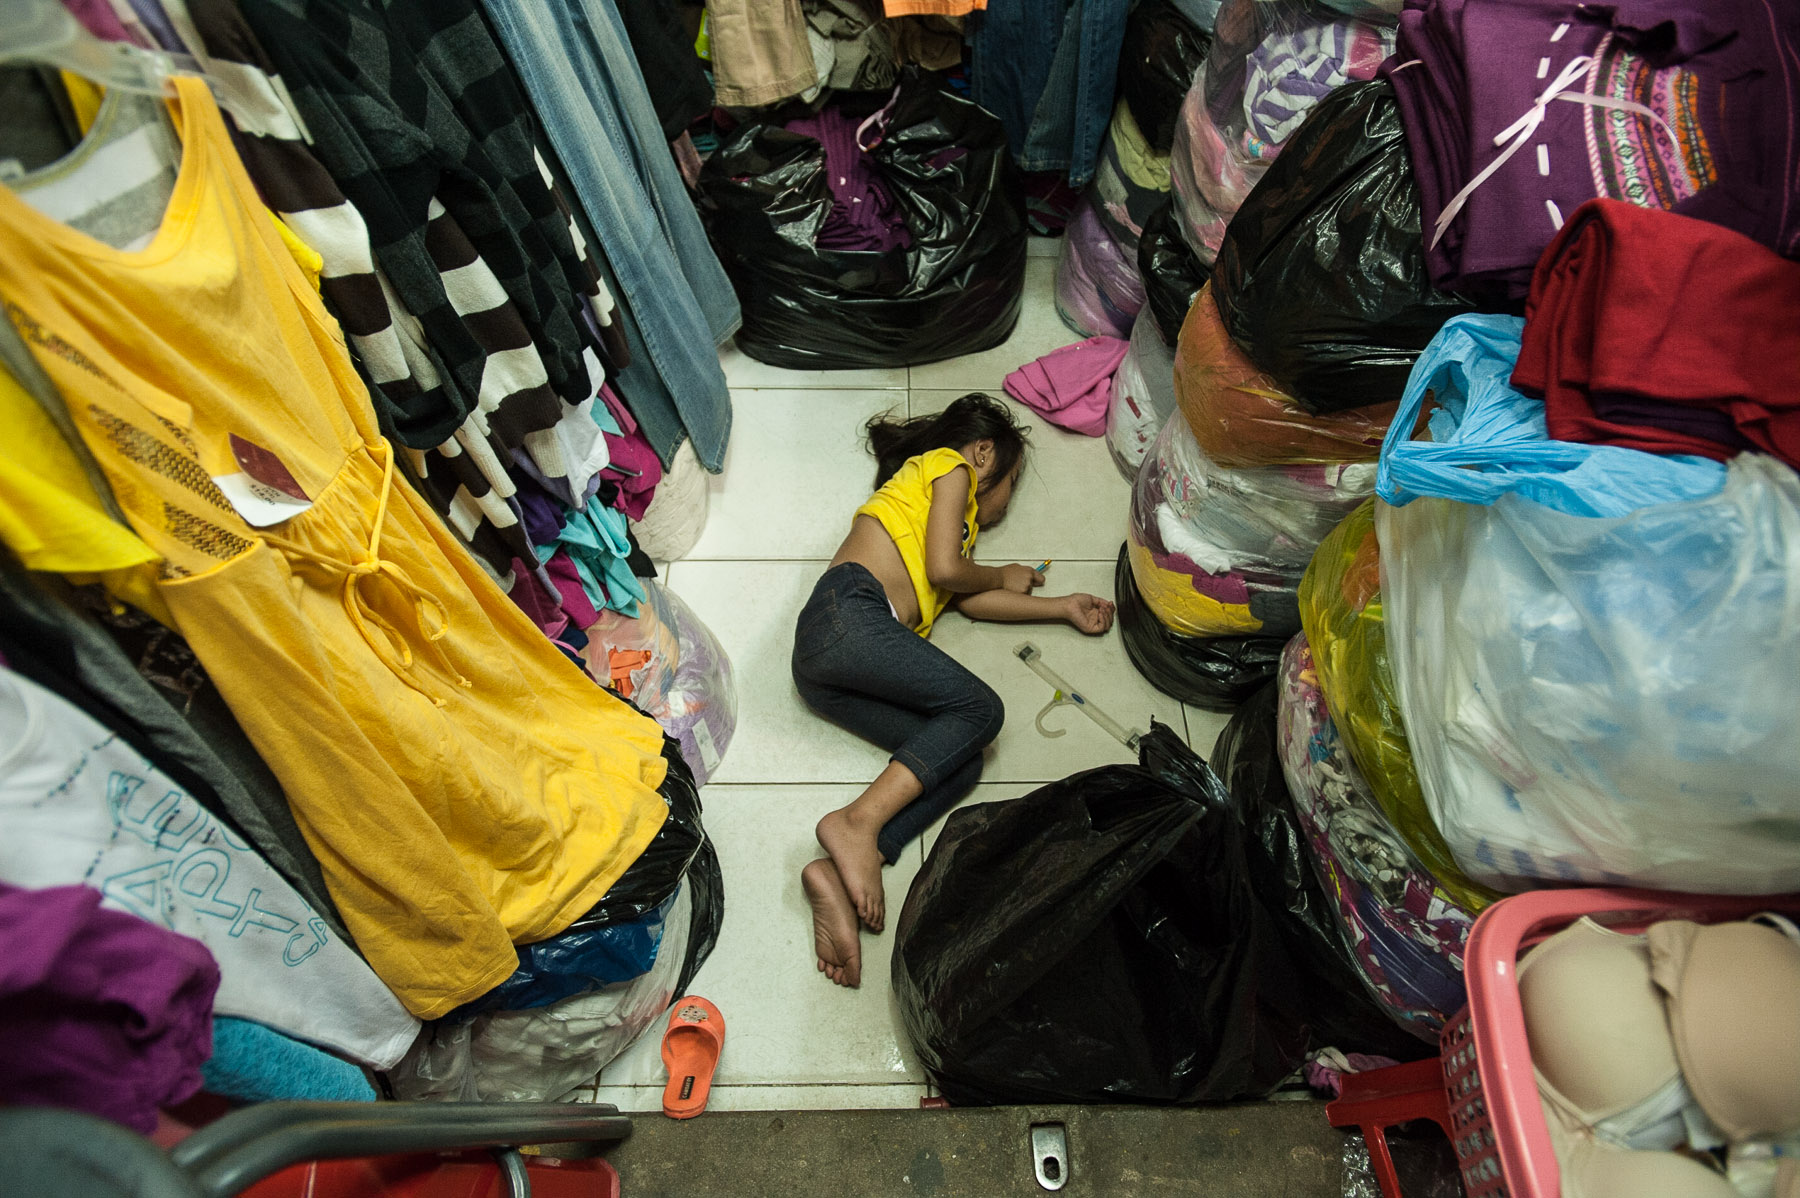 Girl asleep on floor of market stall, Russian market, Phnom Penh Cambodia.